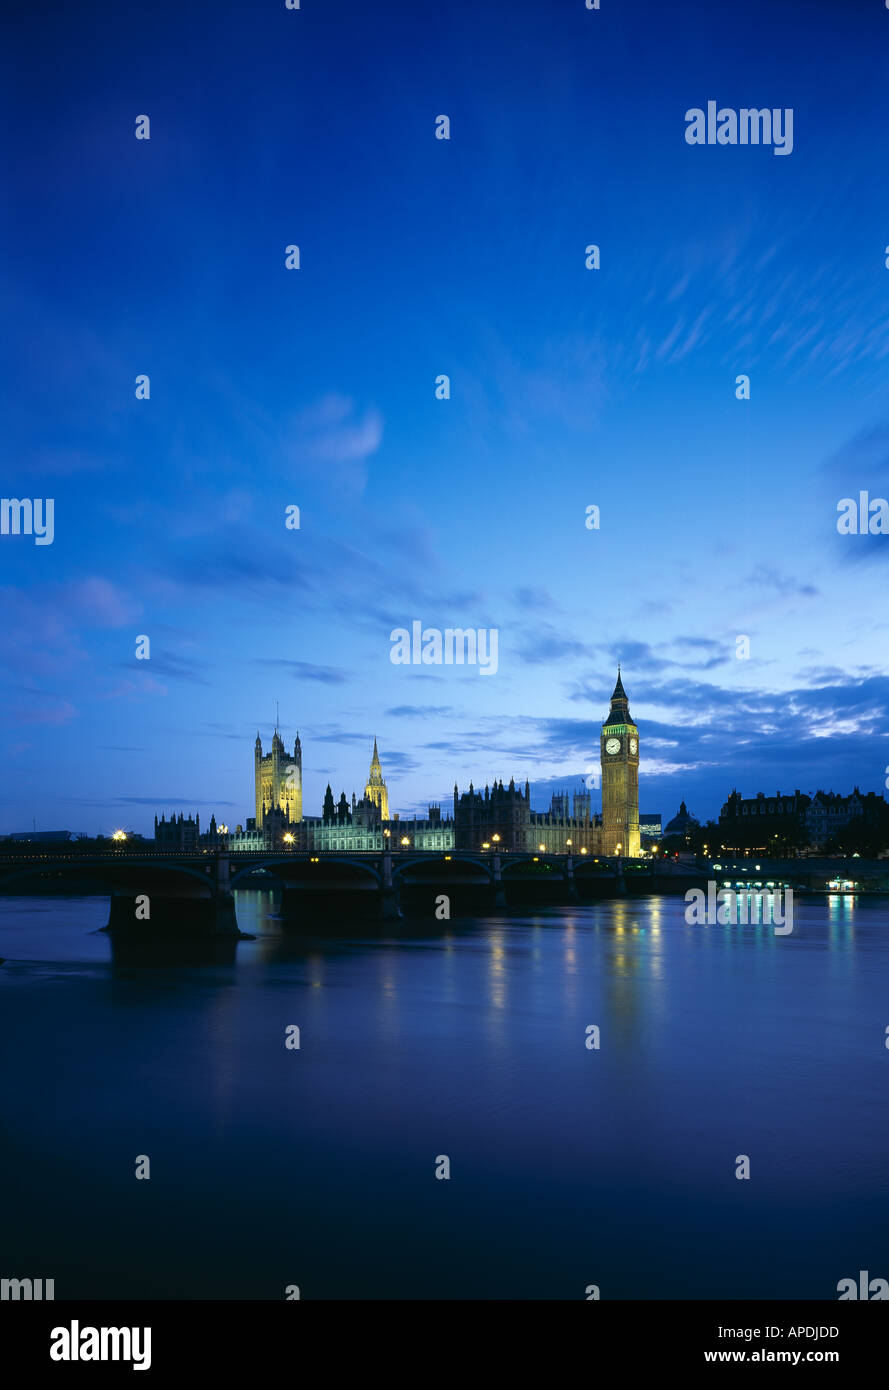 Big Ben and Houses of Parliament viewed across Westminster Bridge at dusk. Architect: Charles Barry , A. W. N. Pugin - Stock Image